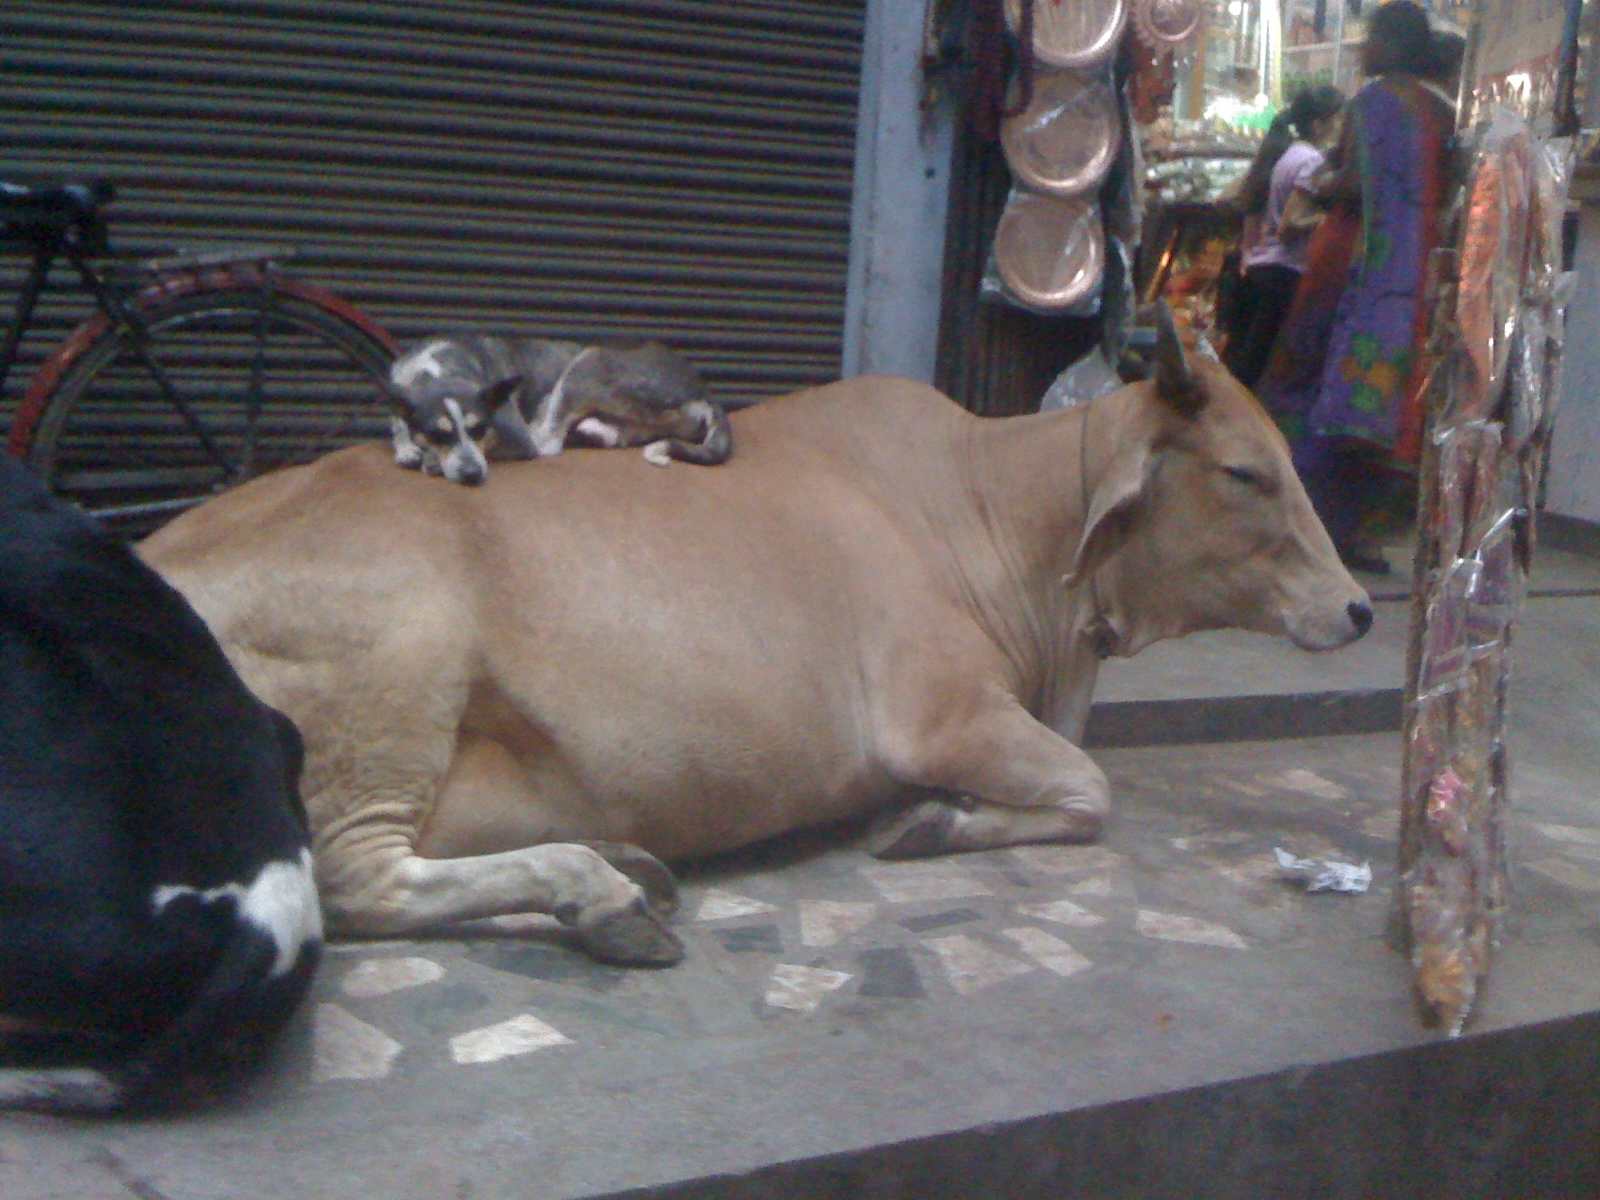 dog and cow links